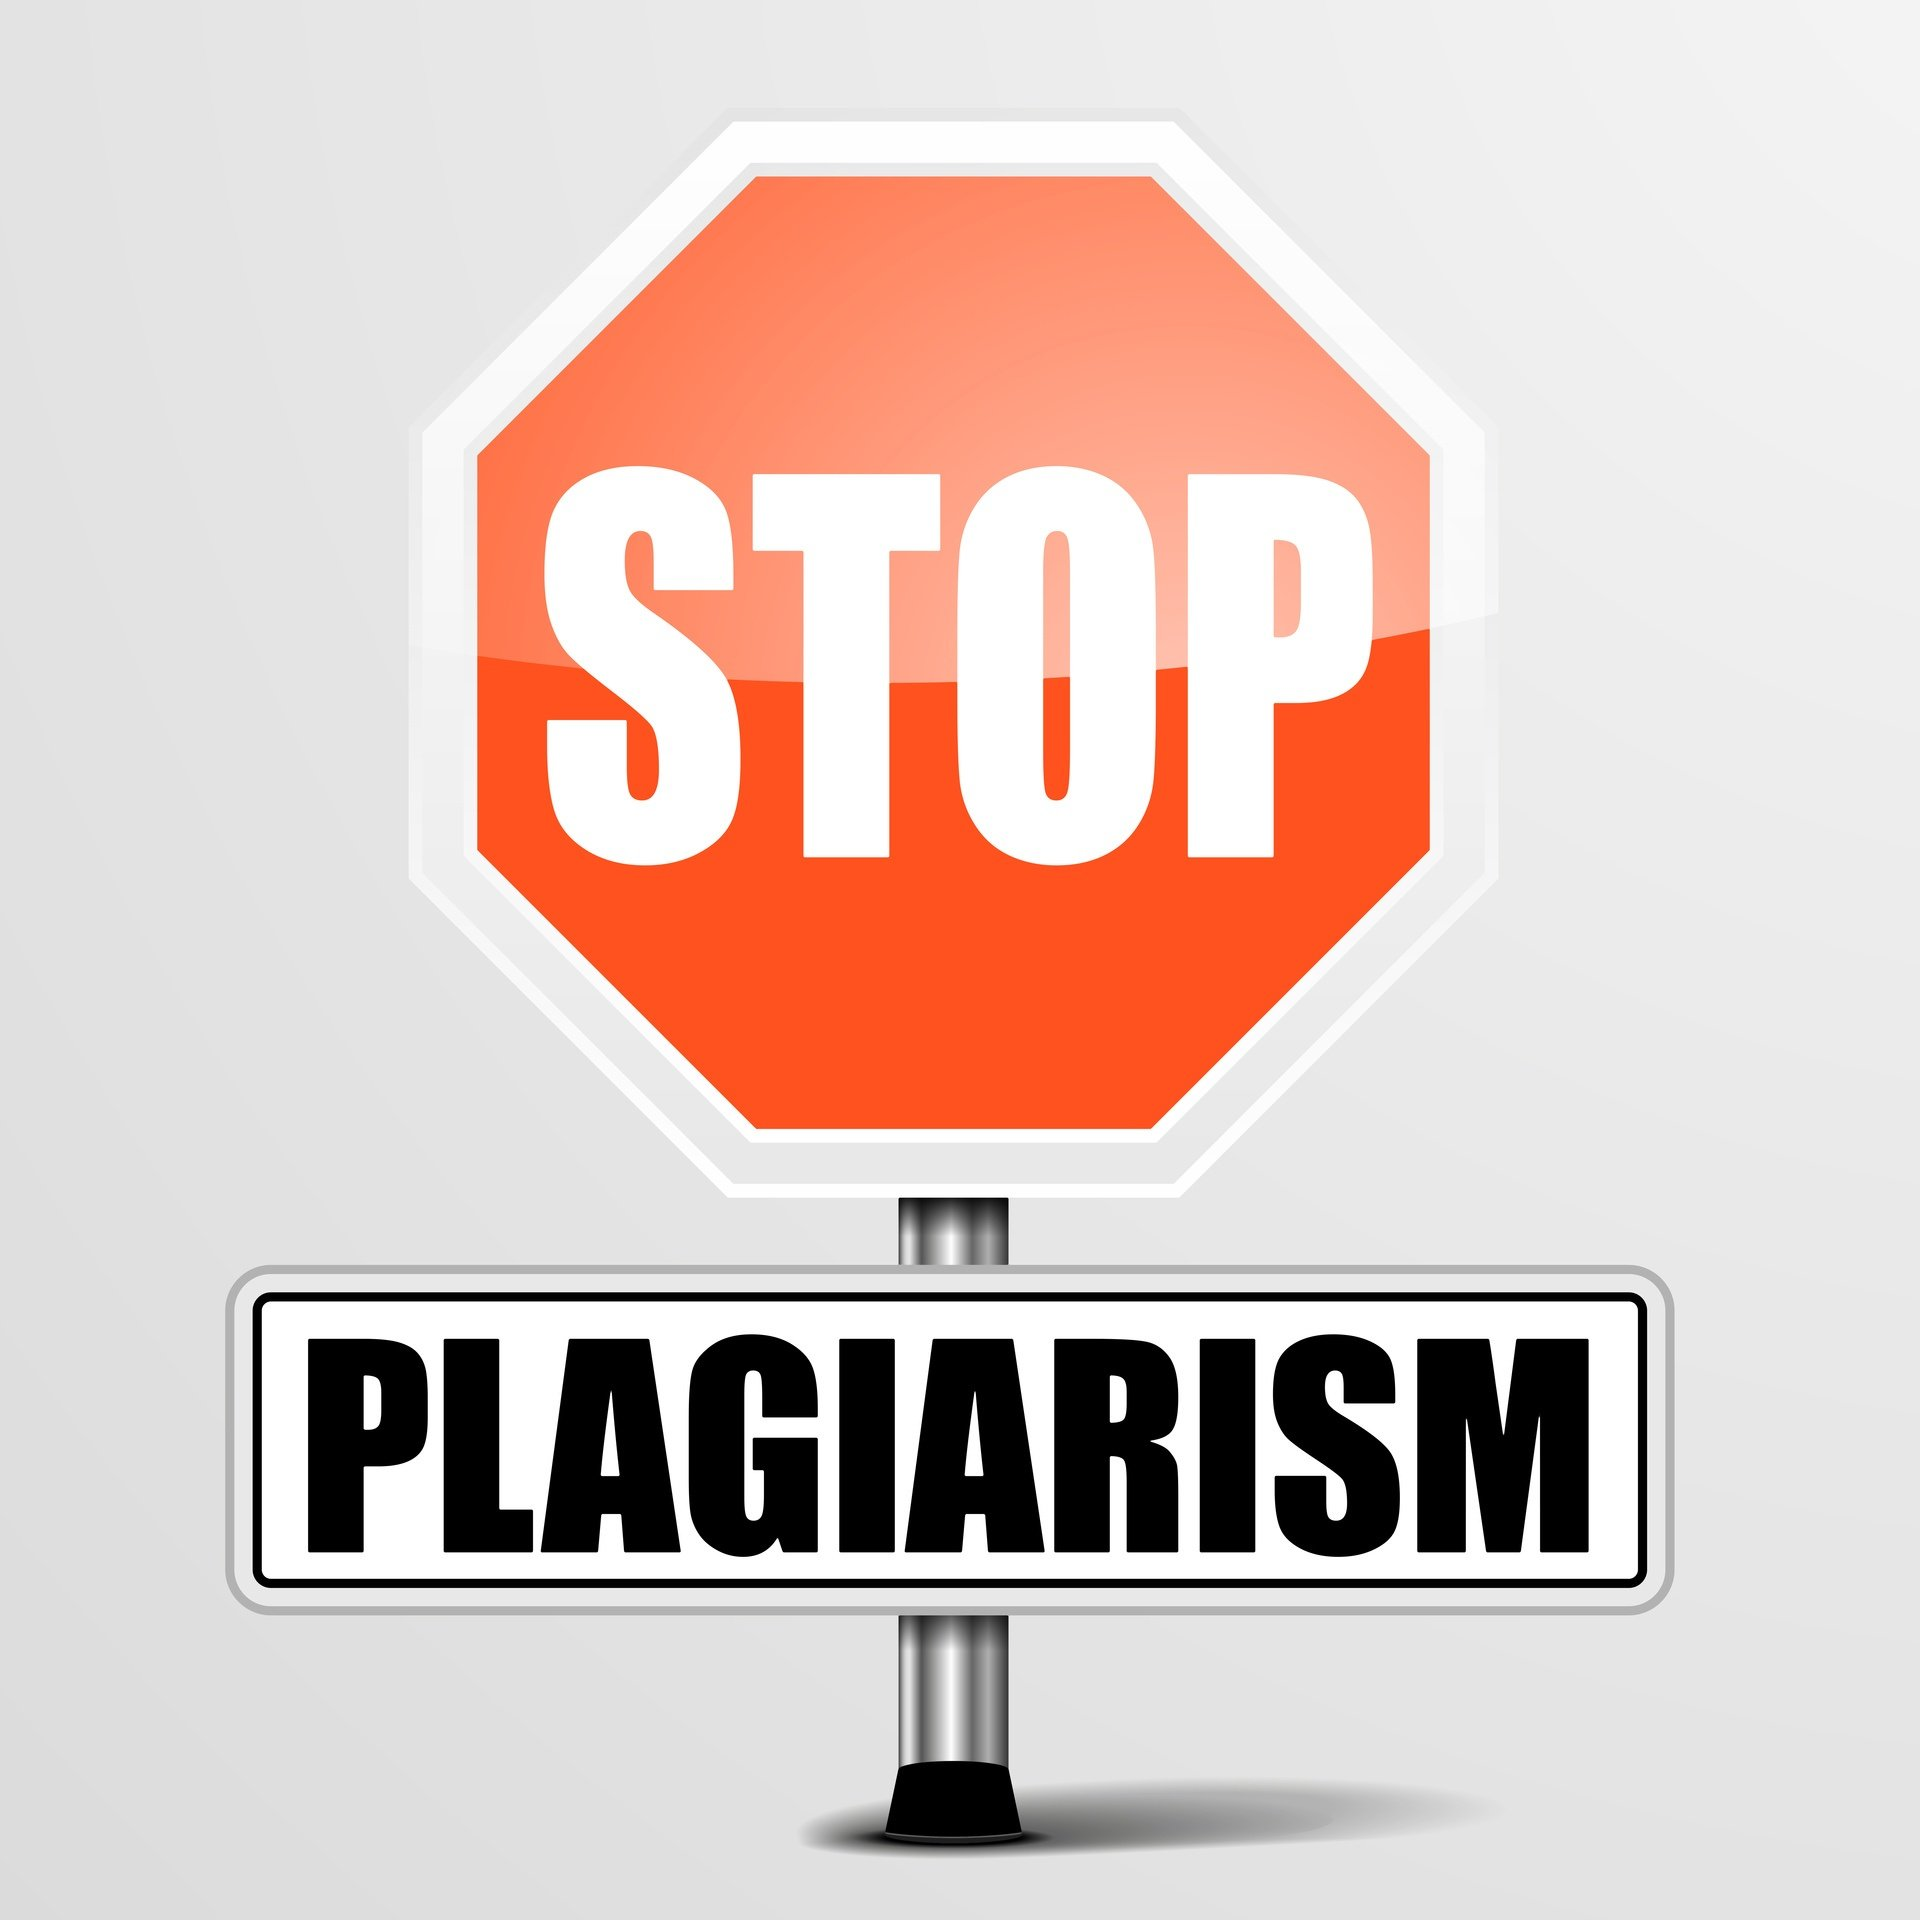 psychology subjects in college buying essays online plagiarism